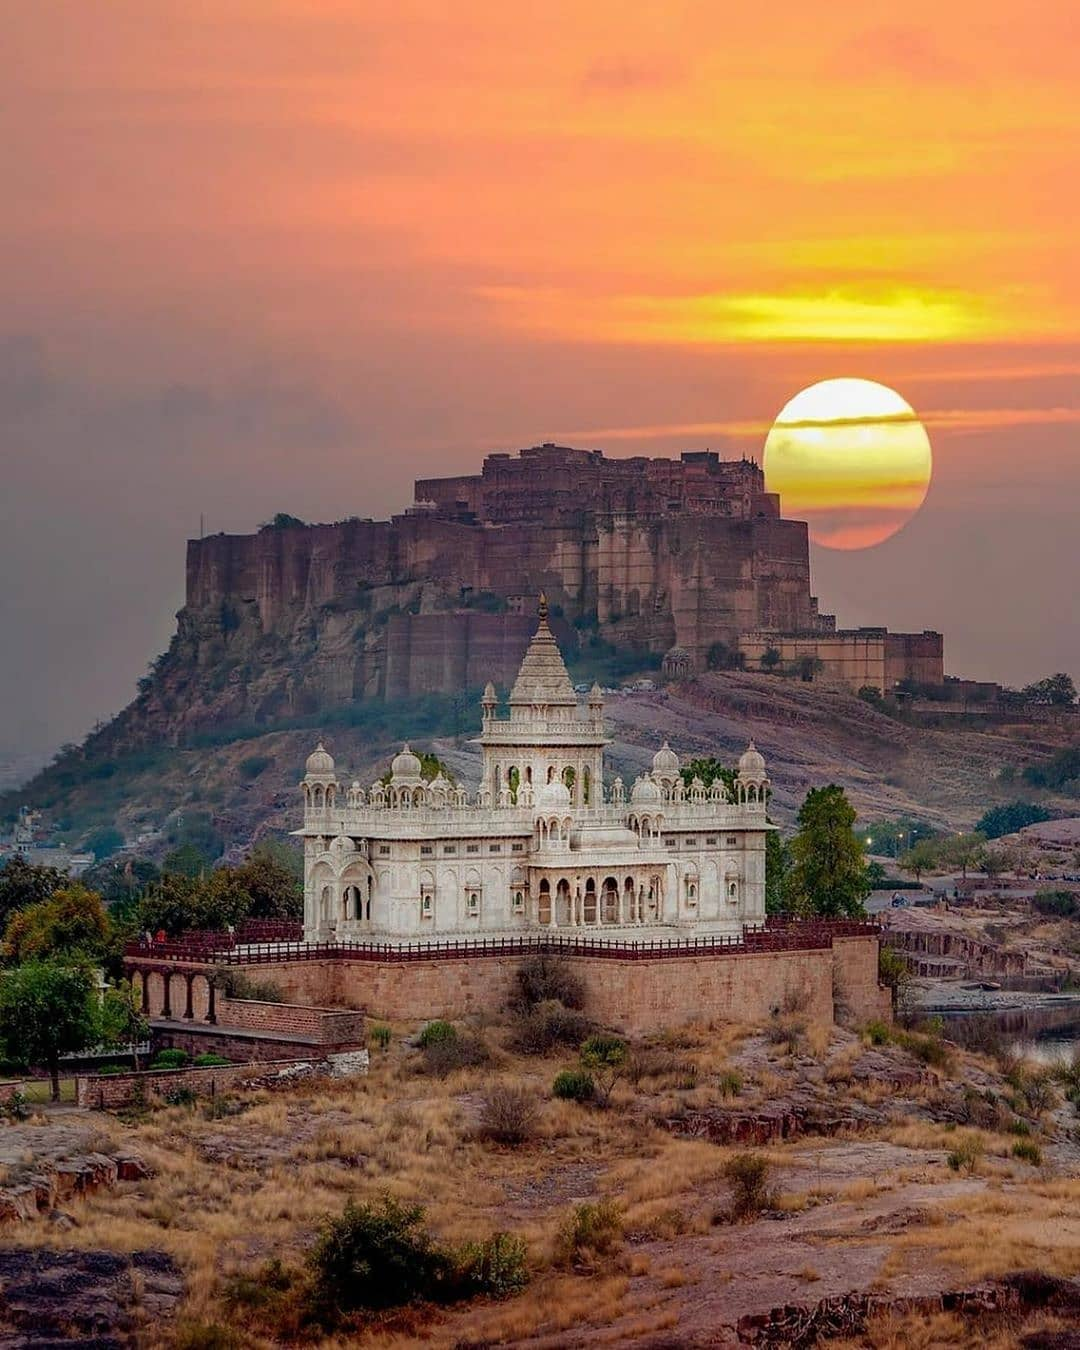 Jodhpur rajasthan https://t.co/87XsoUdRQM